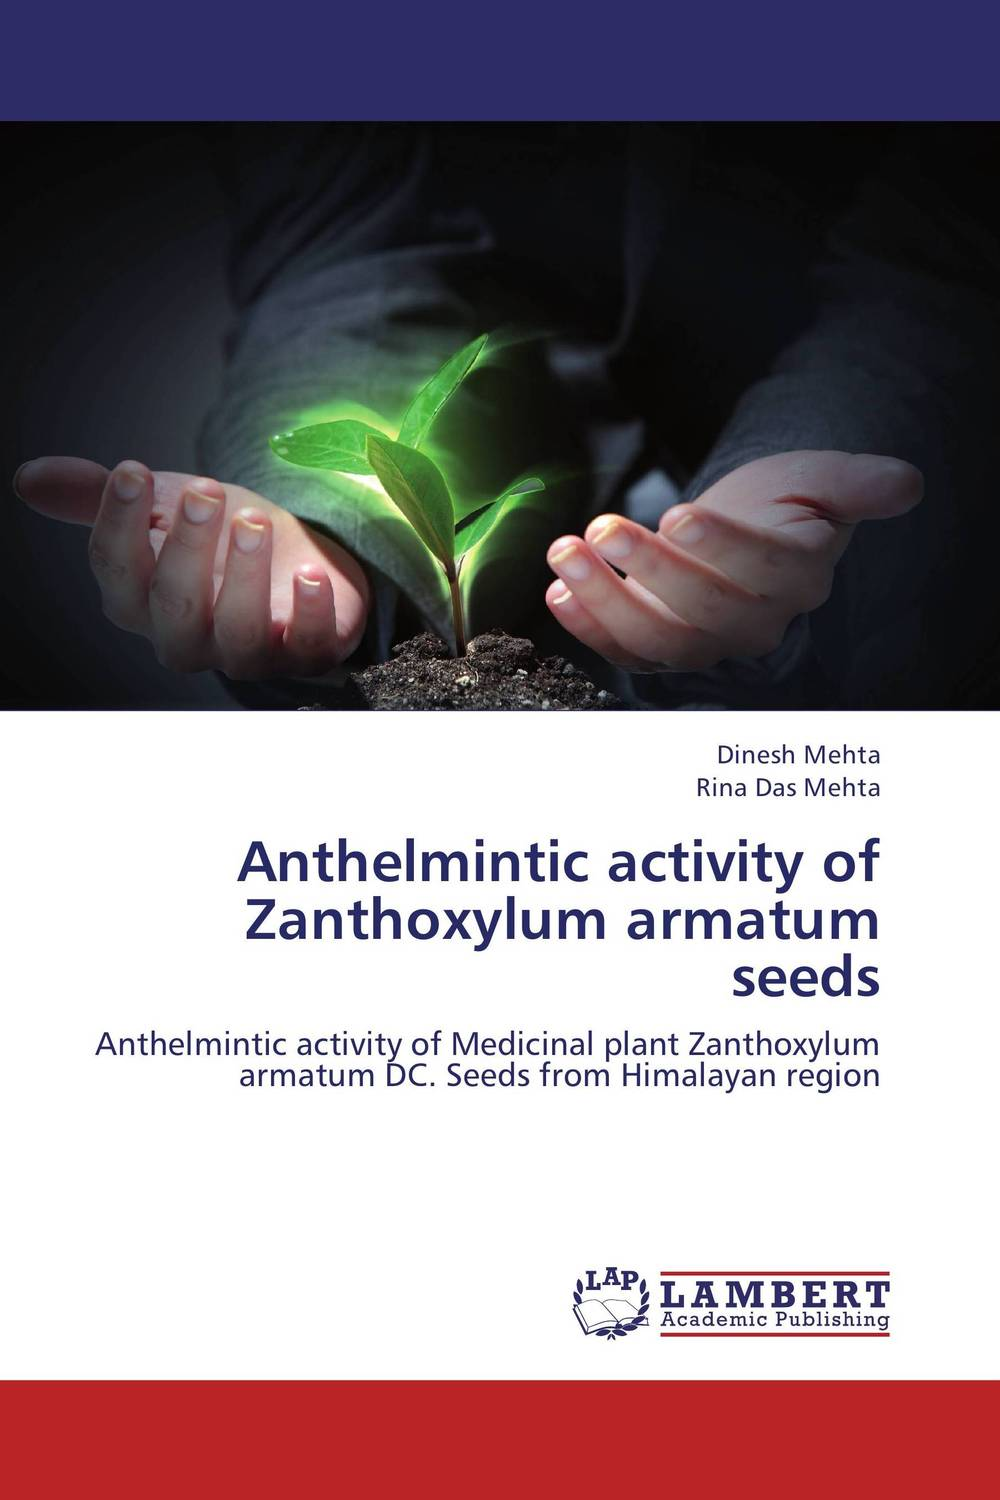 Anthelmintic activity of Zanthoxylum armatum seeds economical importance of medicinal plants in dhudial chakwal pakistan